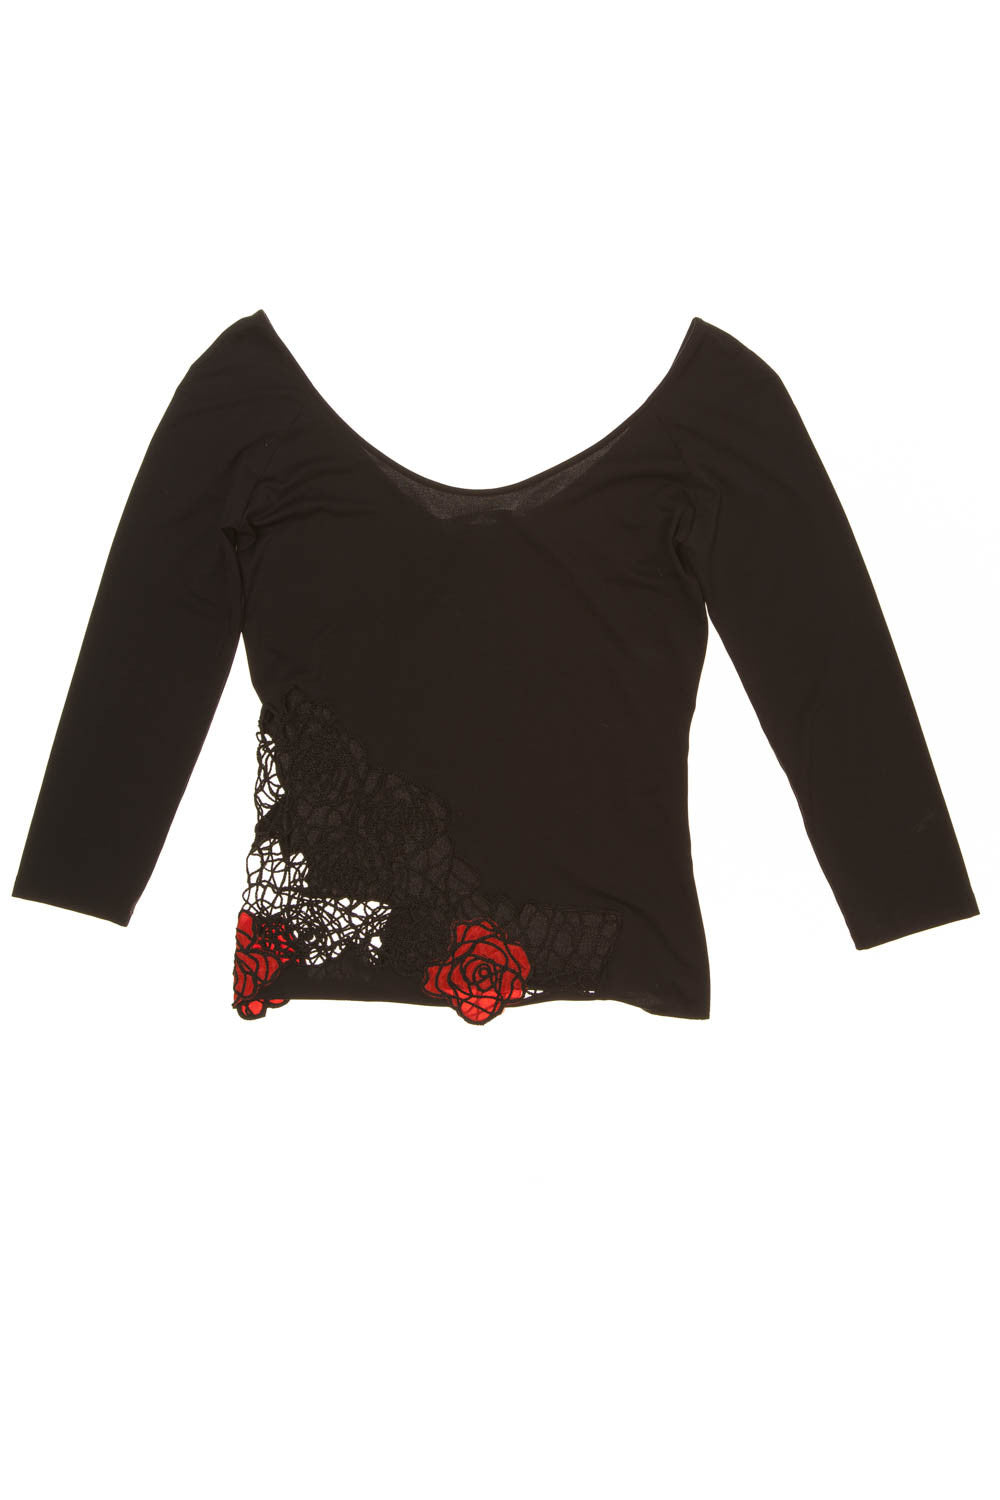 Blumarine - Black Top with Red Roses - IT 42